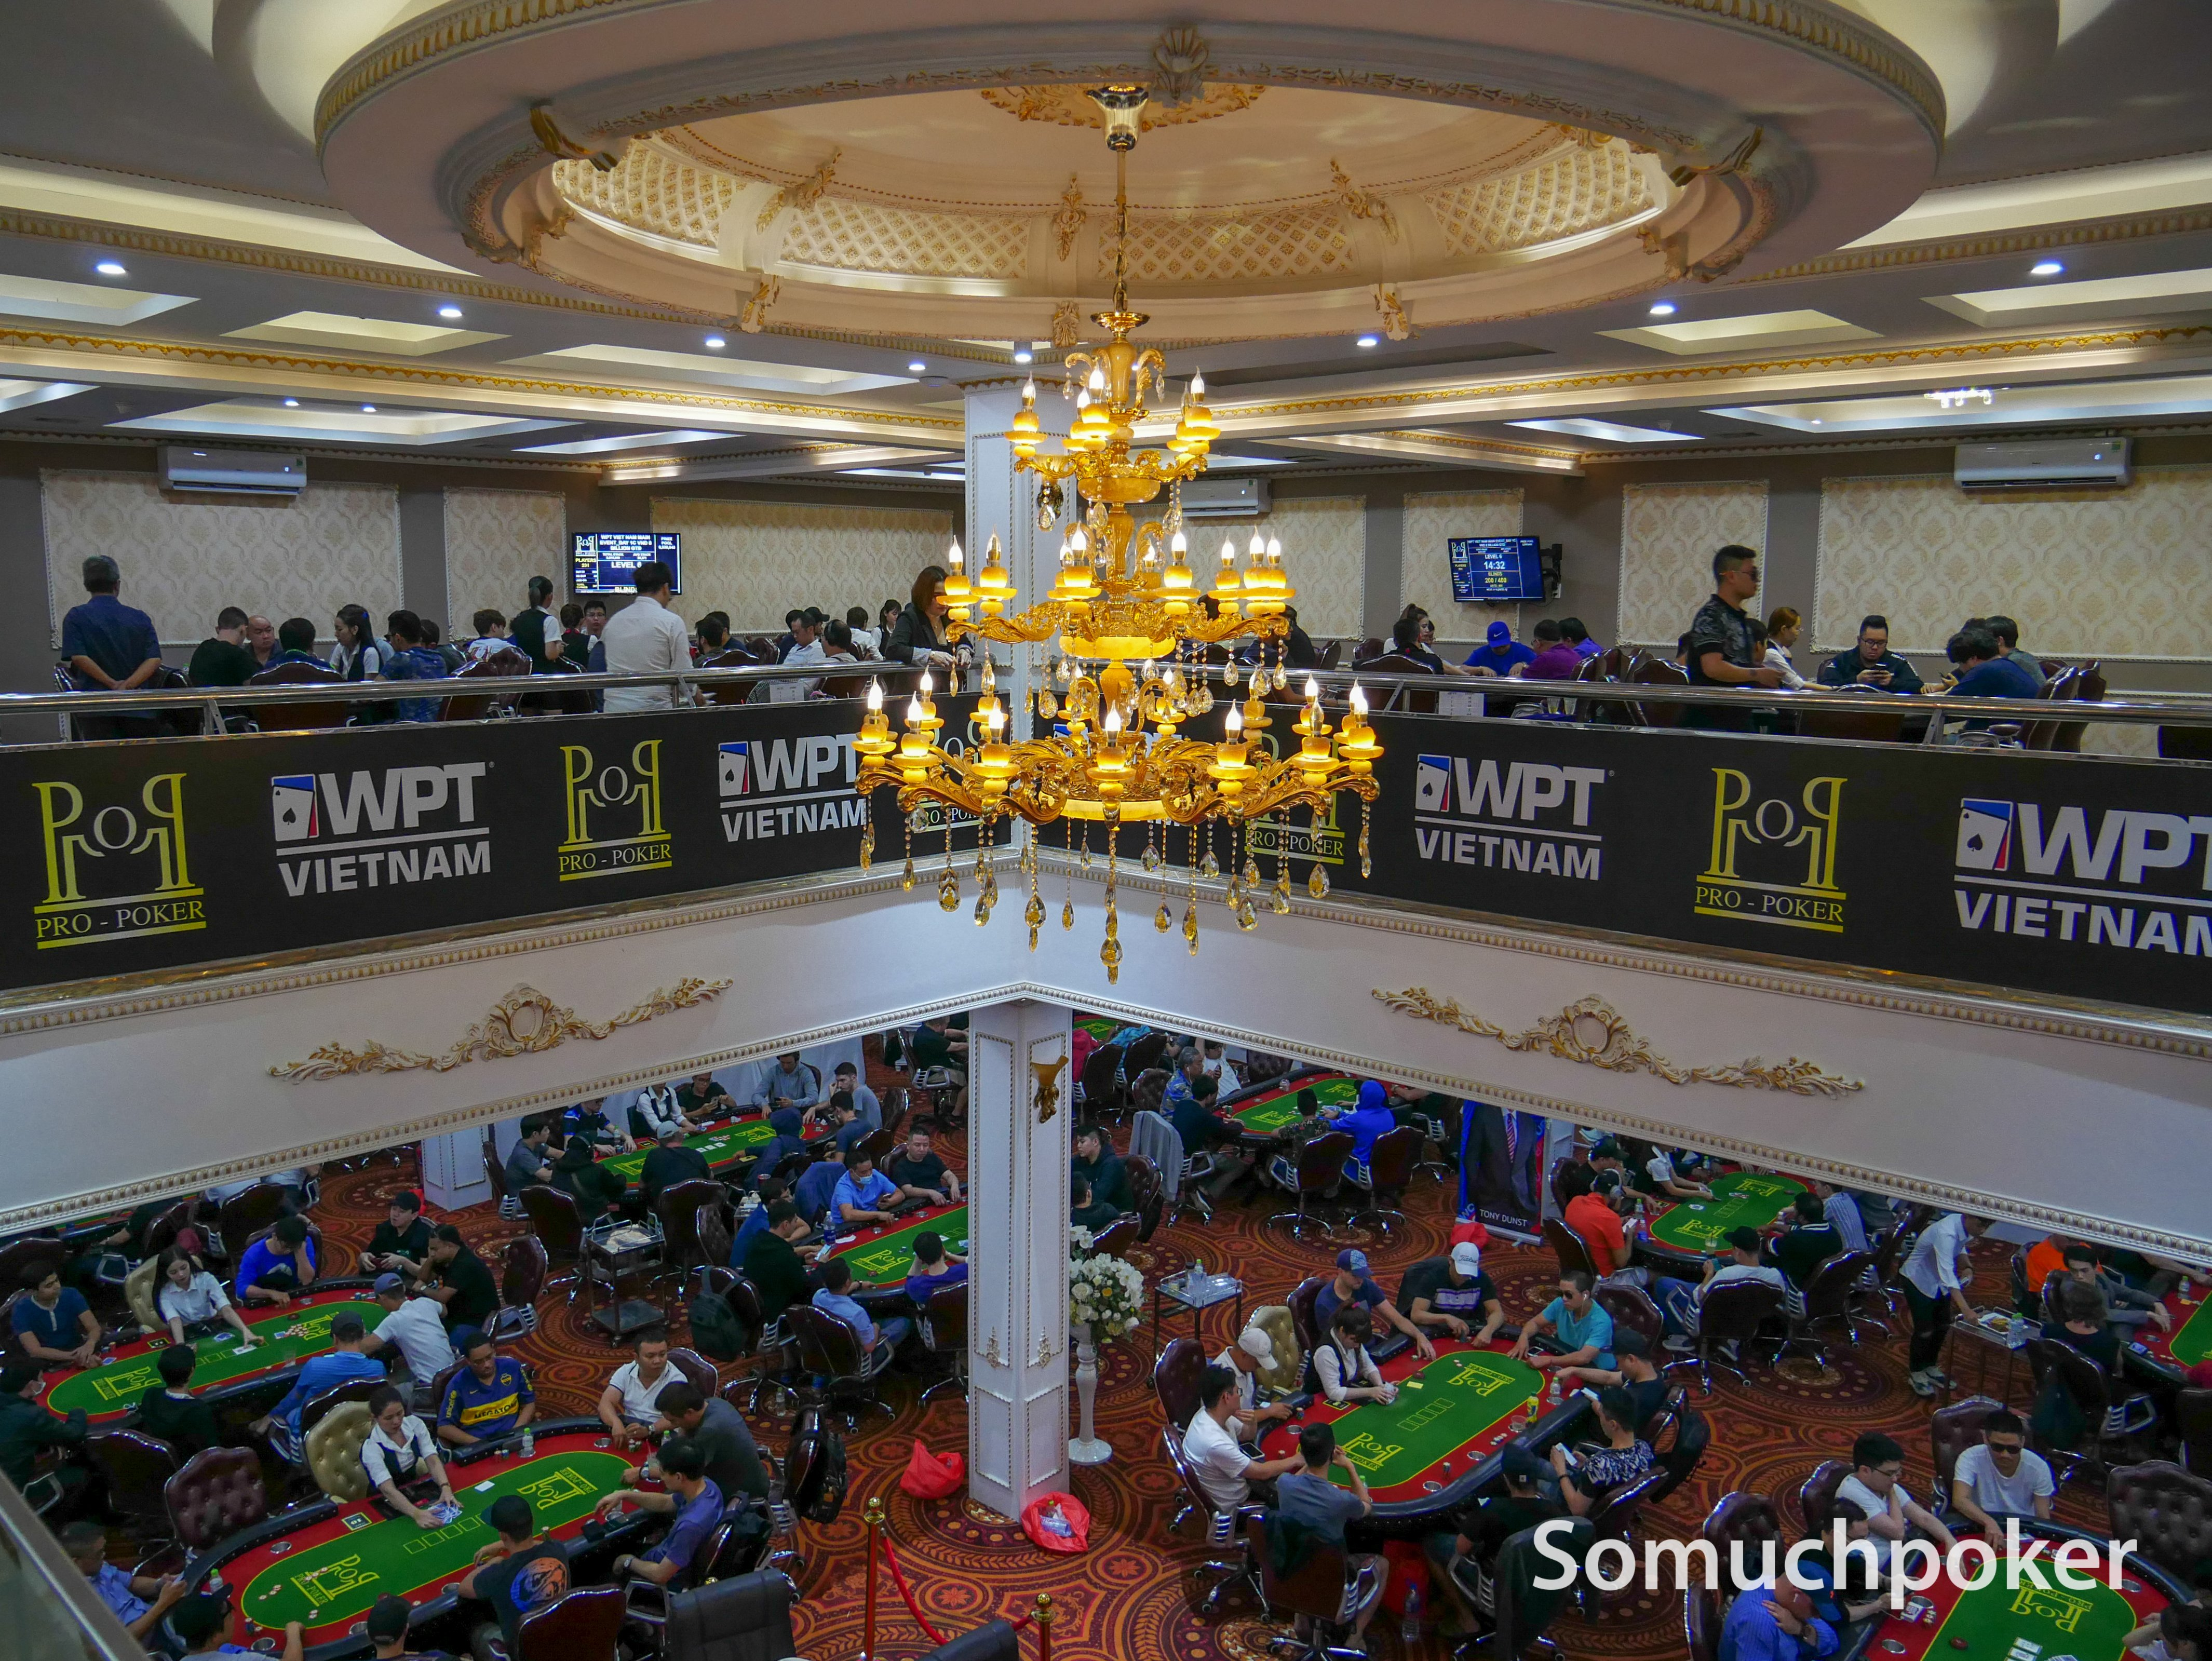 WPT Vietnam Main Event sets record prize pool of VND 15.1 Billion; Sumit Sapra tops Day 1C